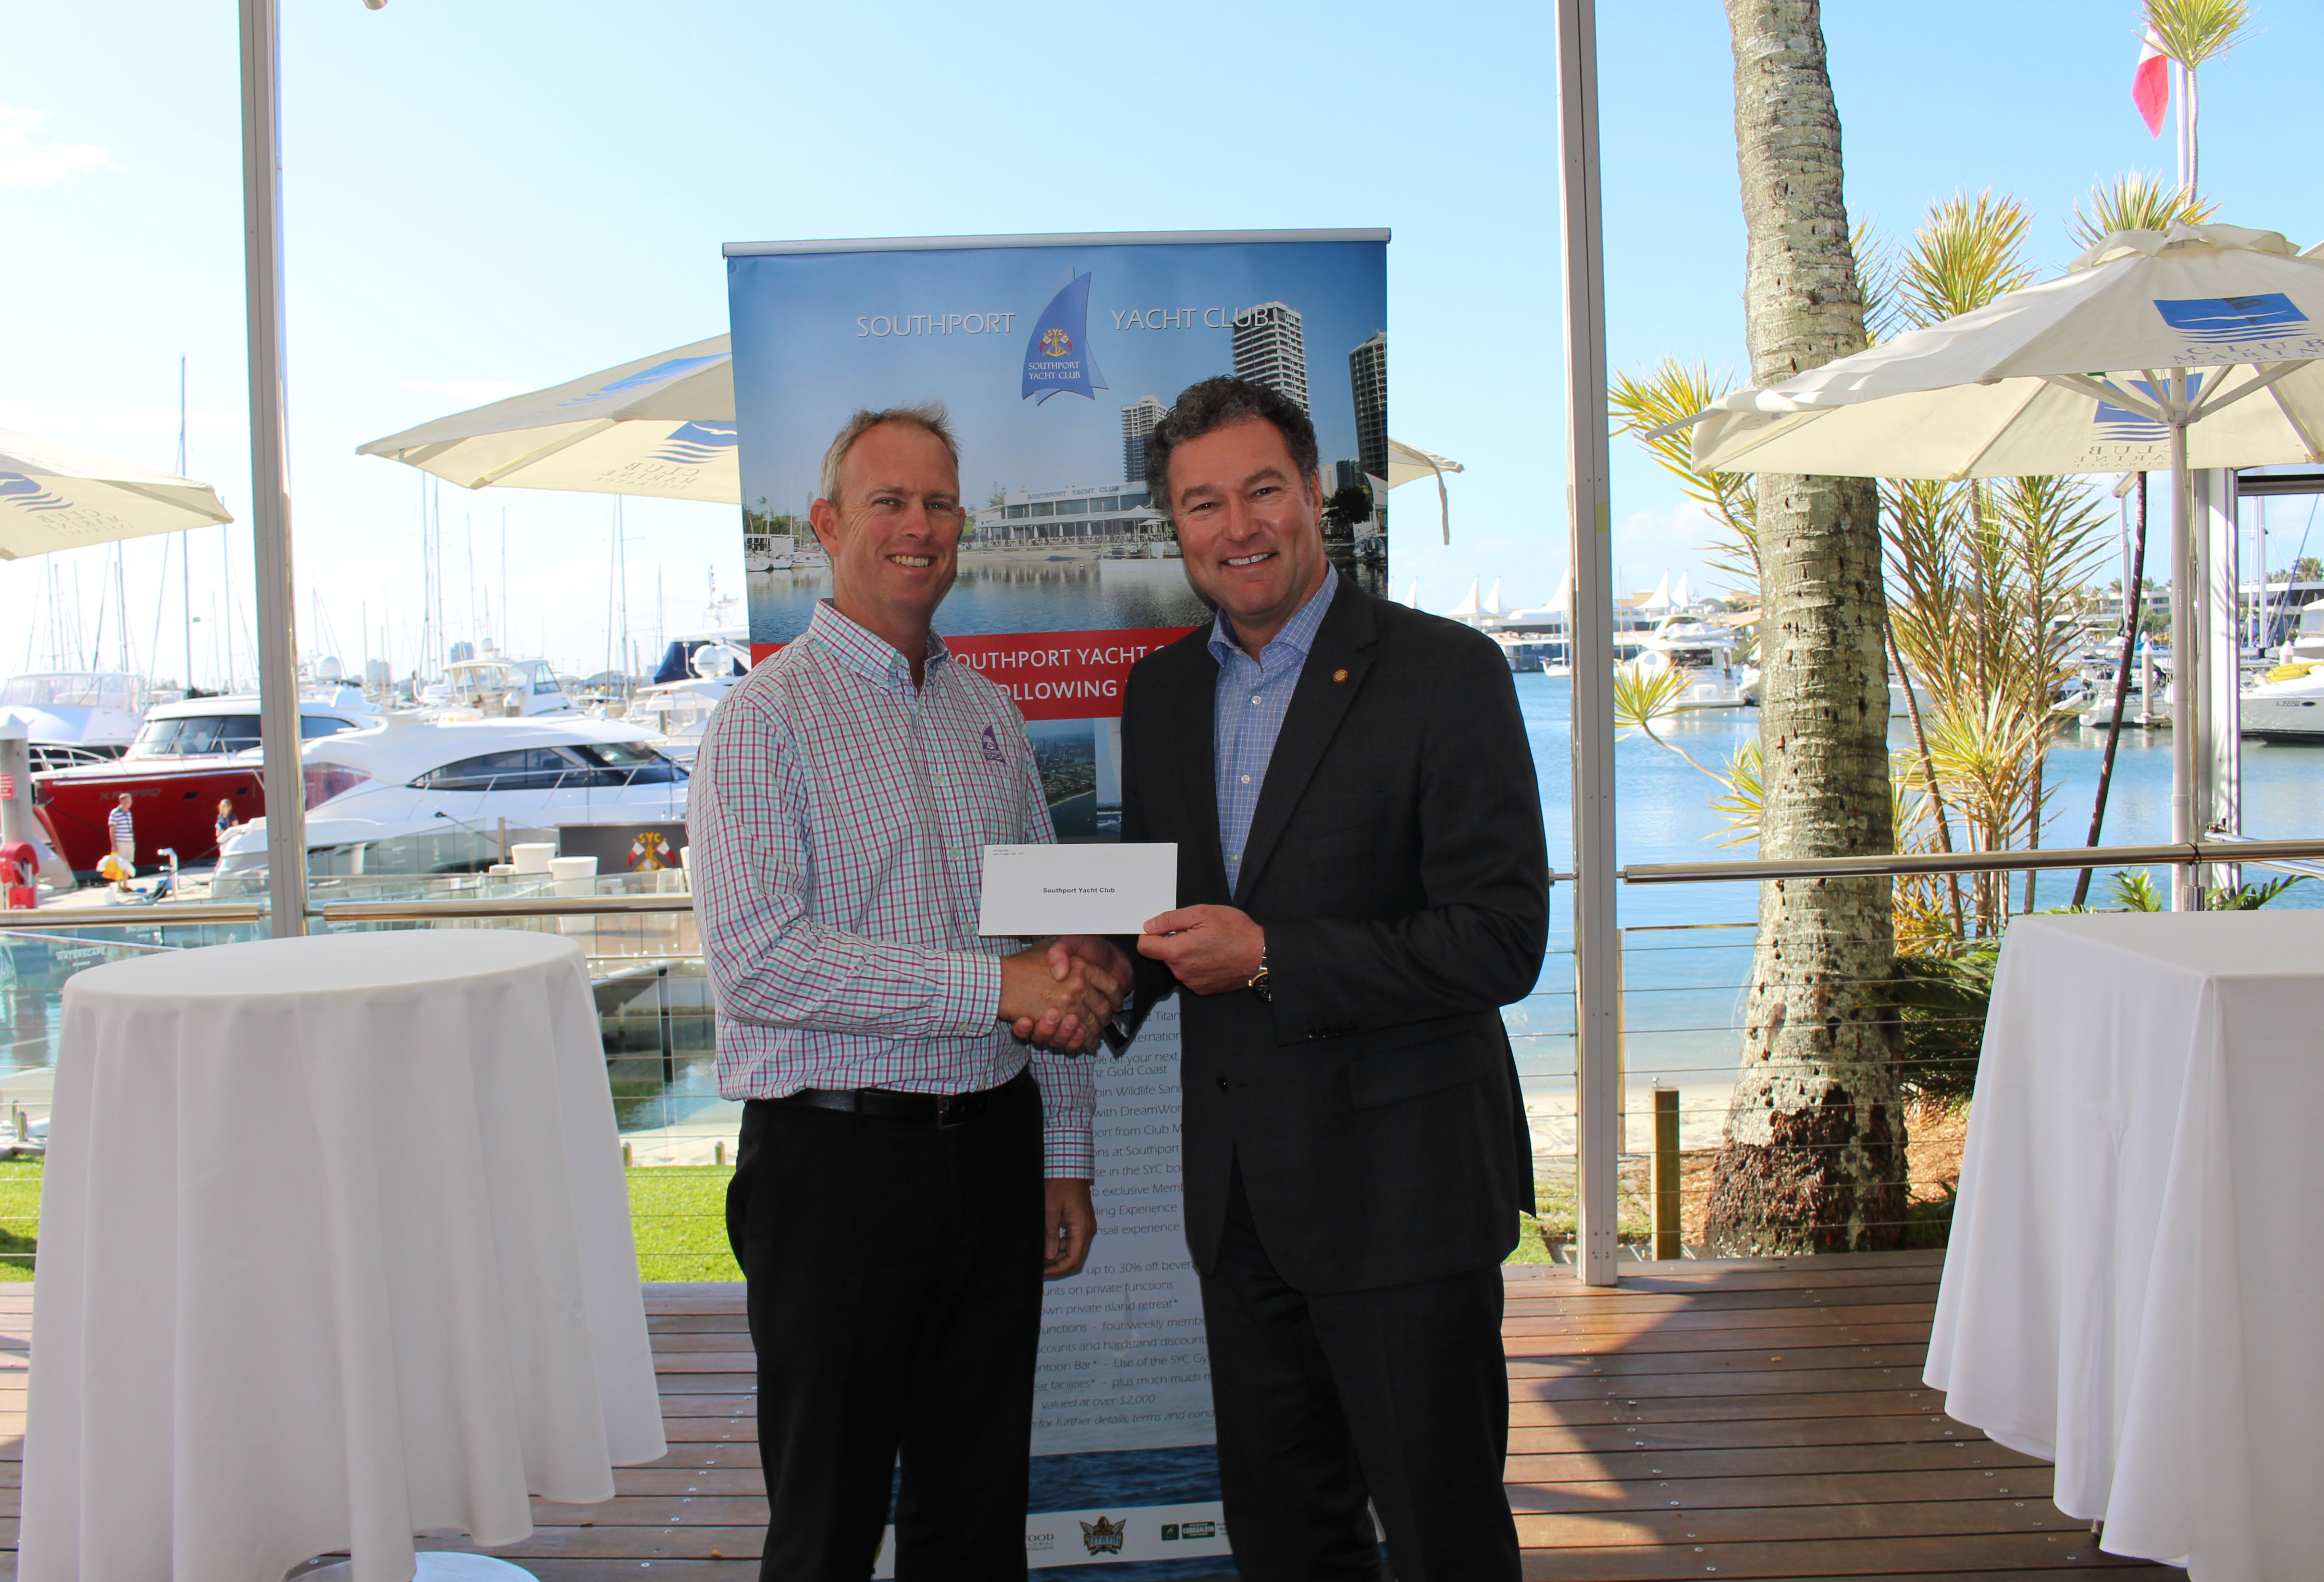 Donating $1000 to support the Southport Yacht Club's Annual Carols on the Broadwater